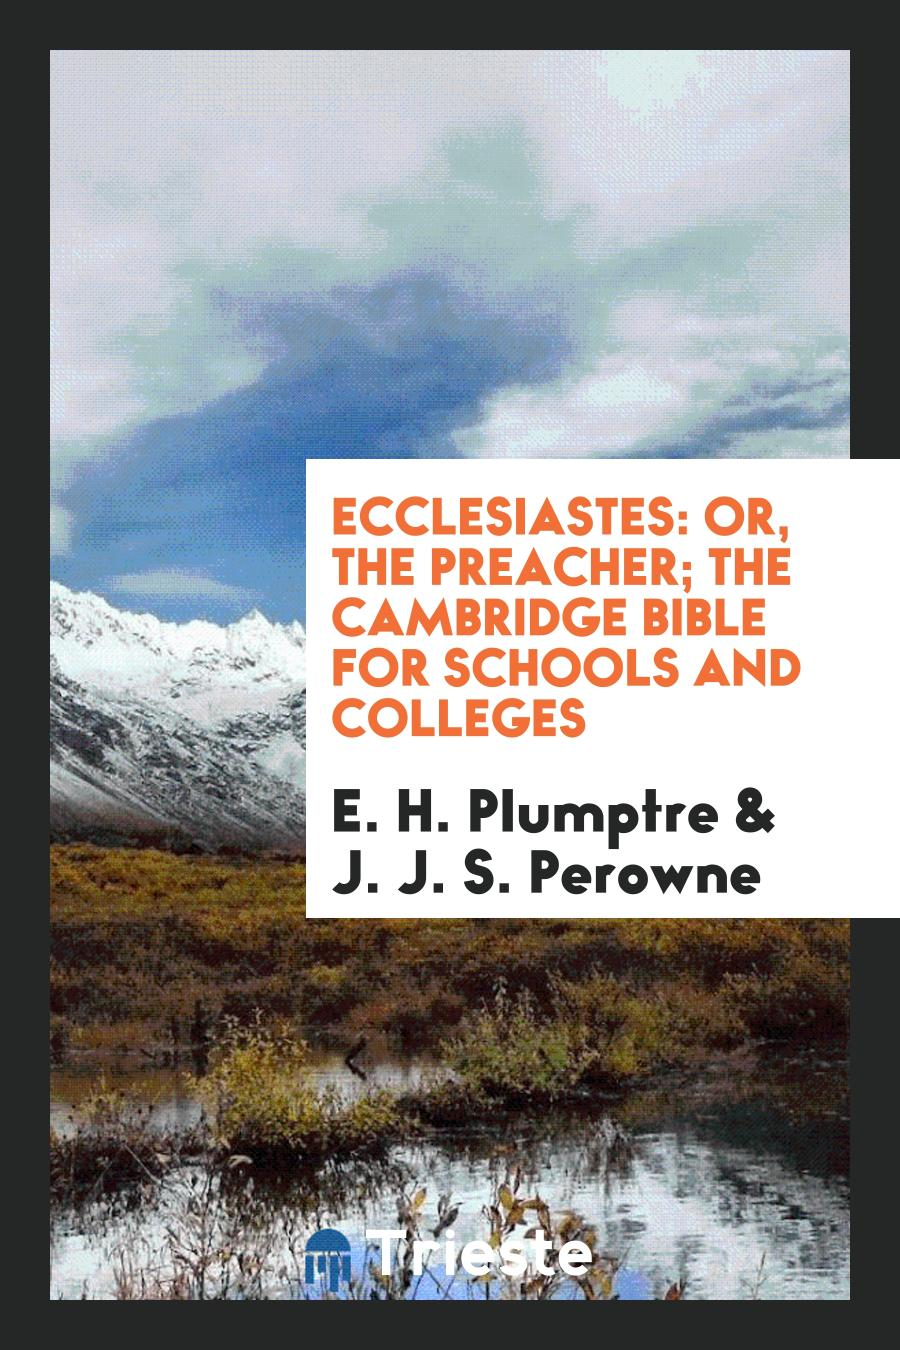 Ecclesiastes: Or, The Preacher; The Cambridge Bible for Schools and Colleges